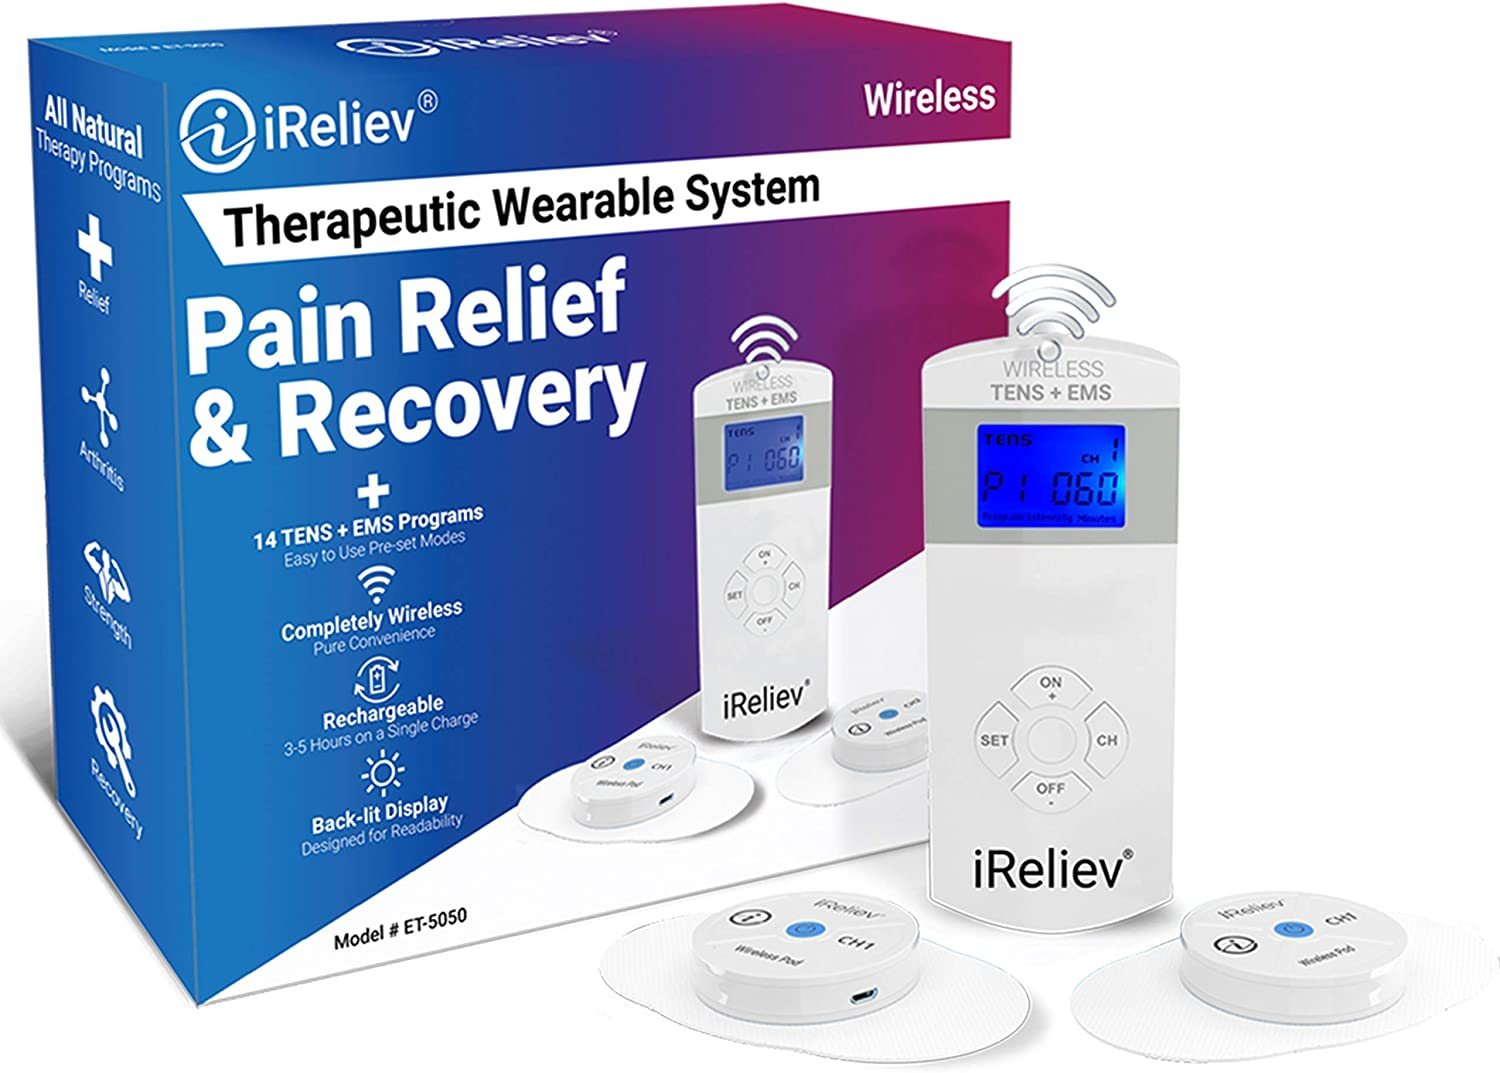 iReliev Wireless TENS + EMS Therapeutic Wearable System Wireless TENS Unit + Muscle Stimulator Combination for Pain Relief, Arthritis, Muscle Conditioning, Muscle Strength: Health & Personal Care